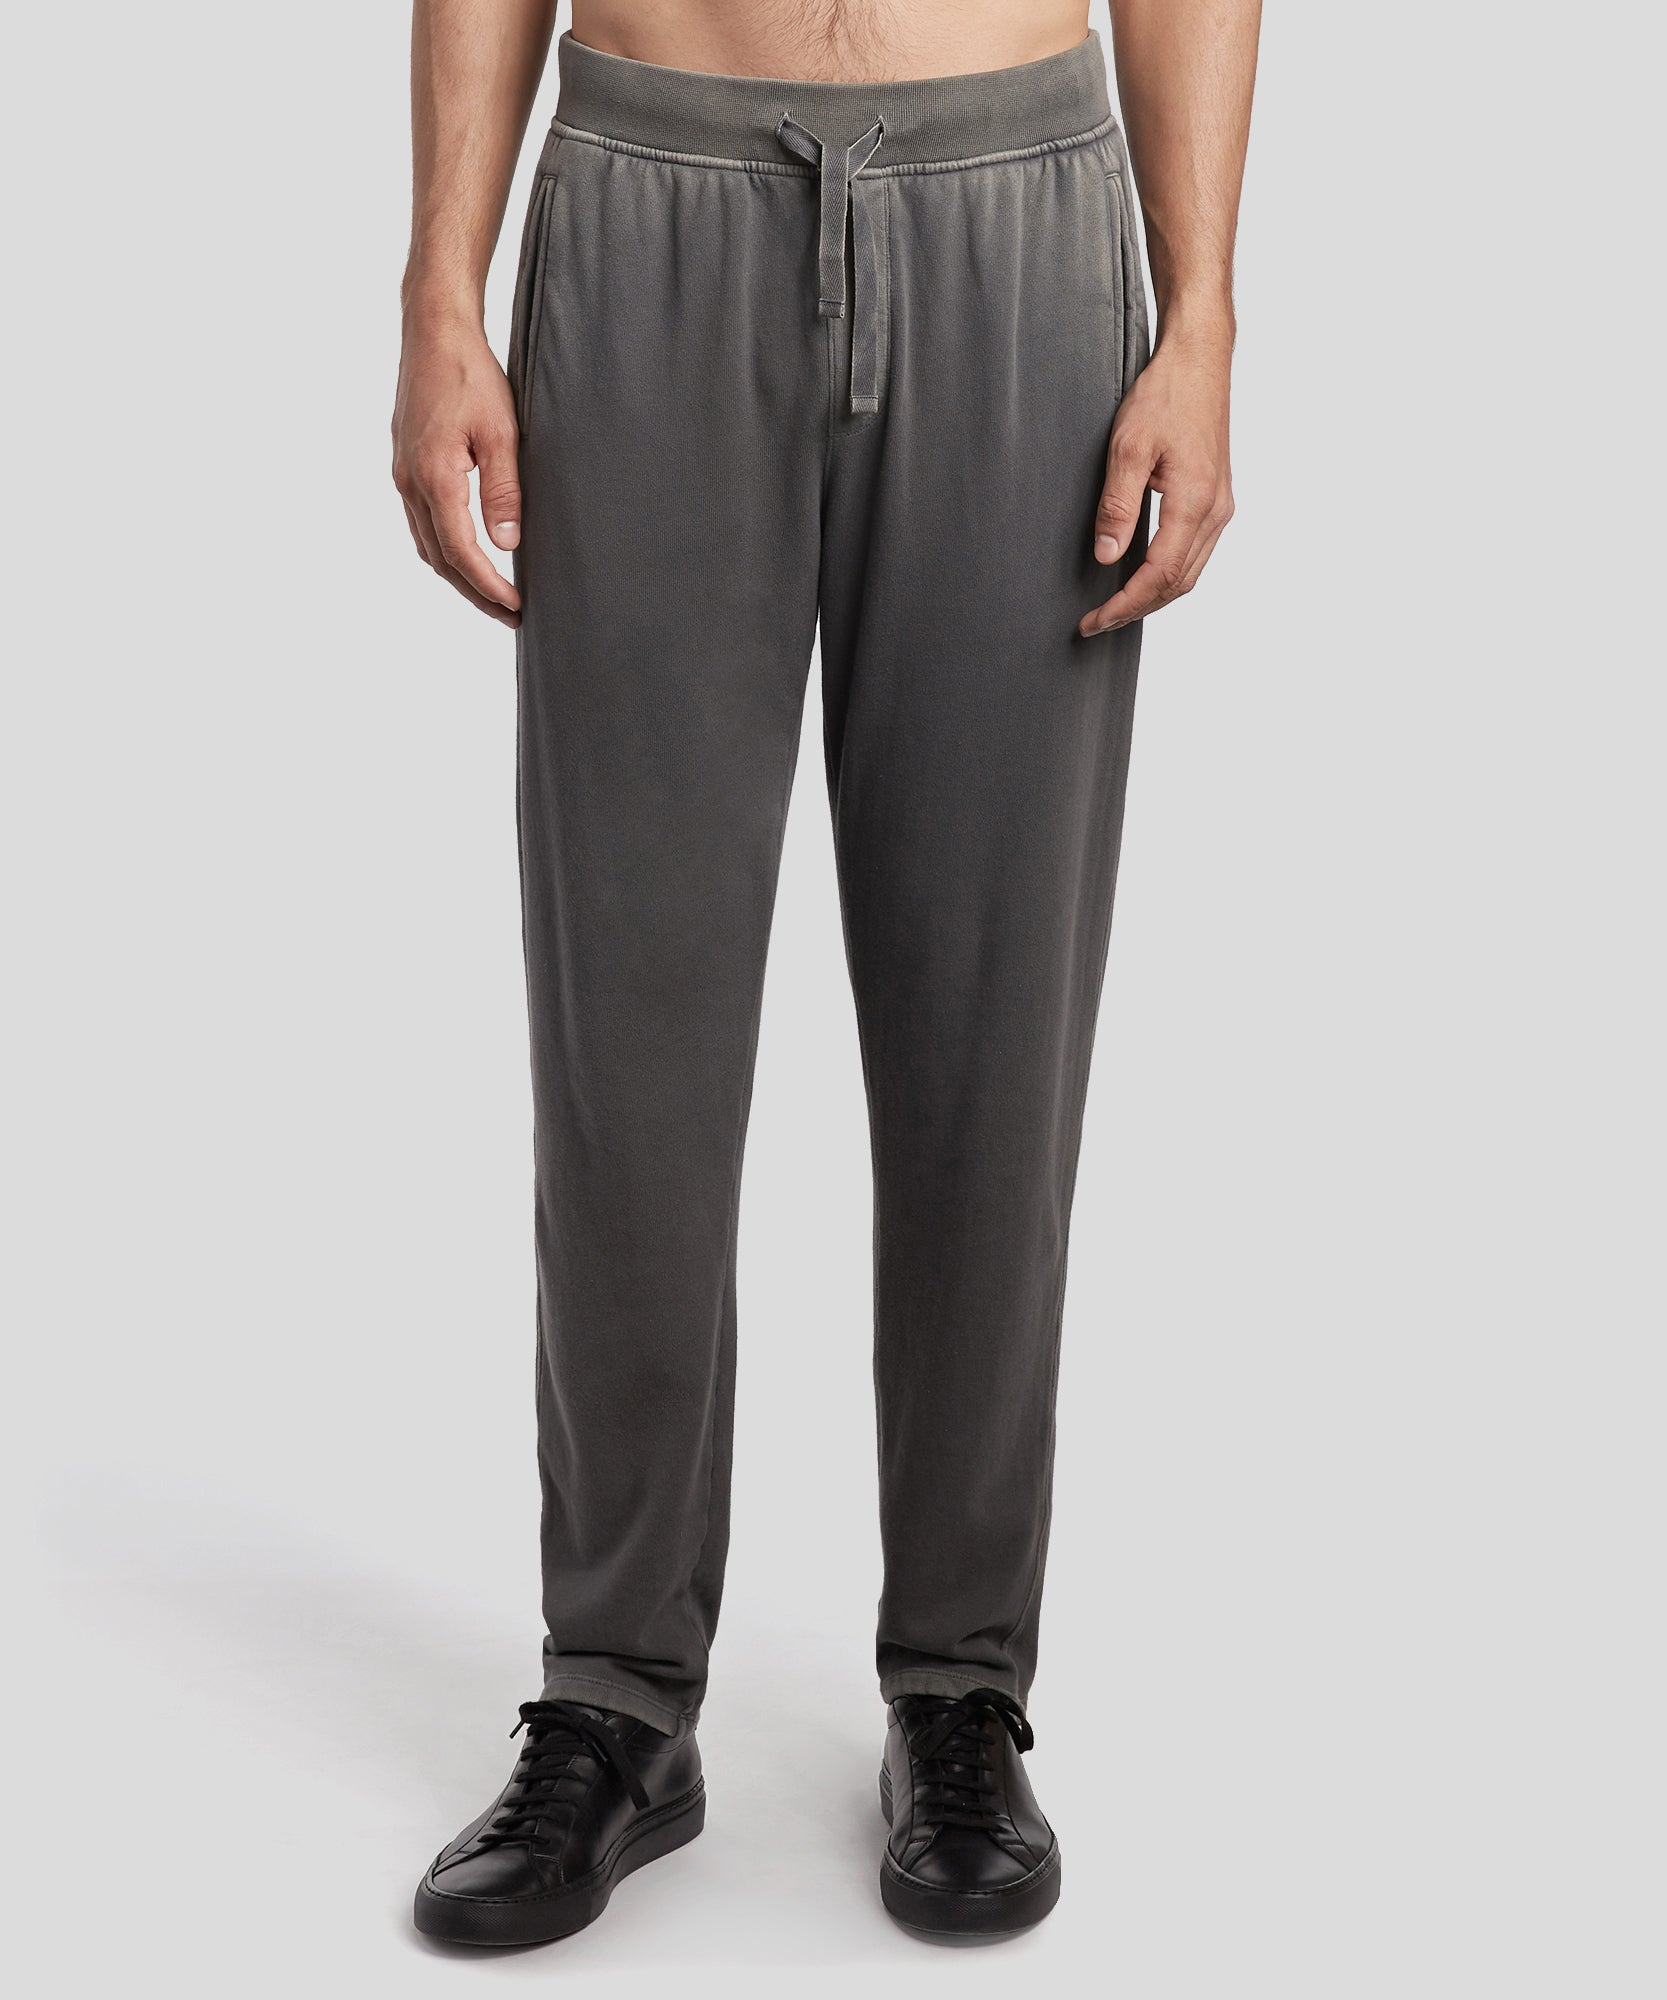 Asphalt Grey Felpa Pull-On Sweatpants - Men's Luxe Loungewear by ATM Anthony Thomas Melillo